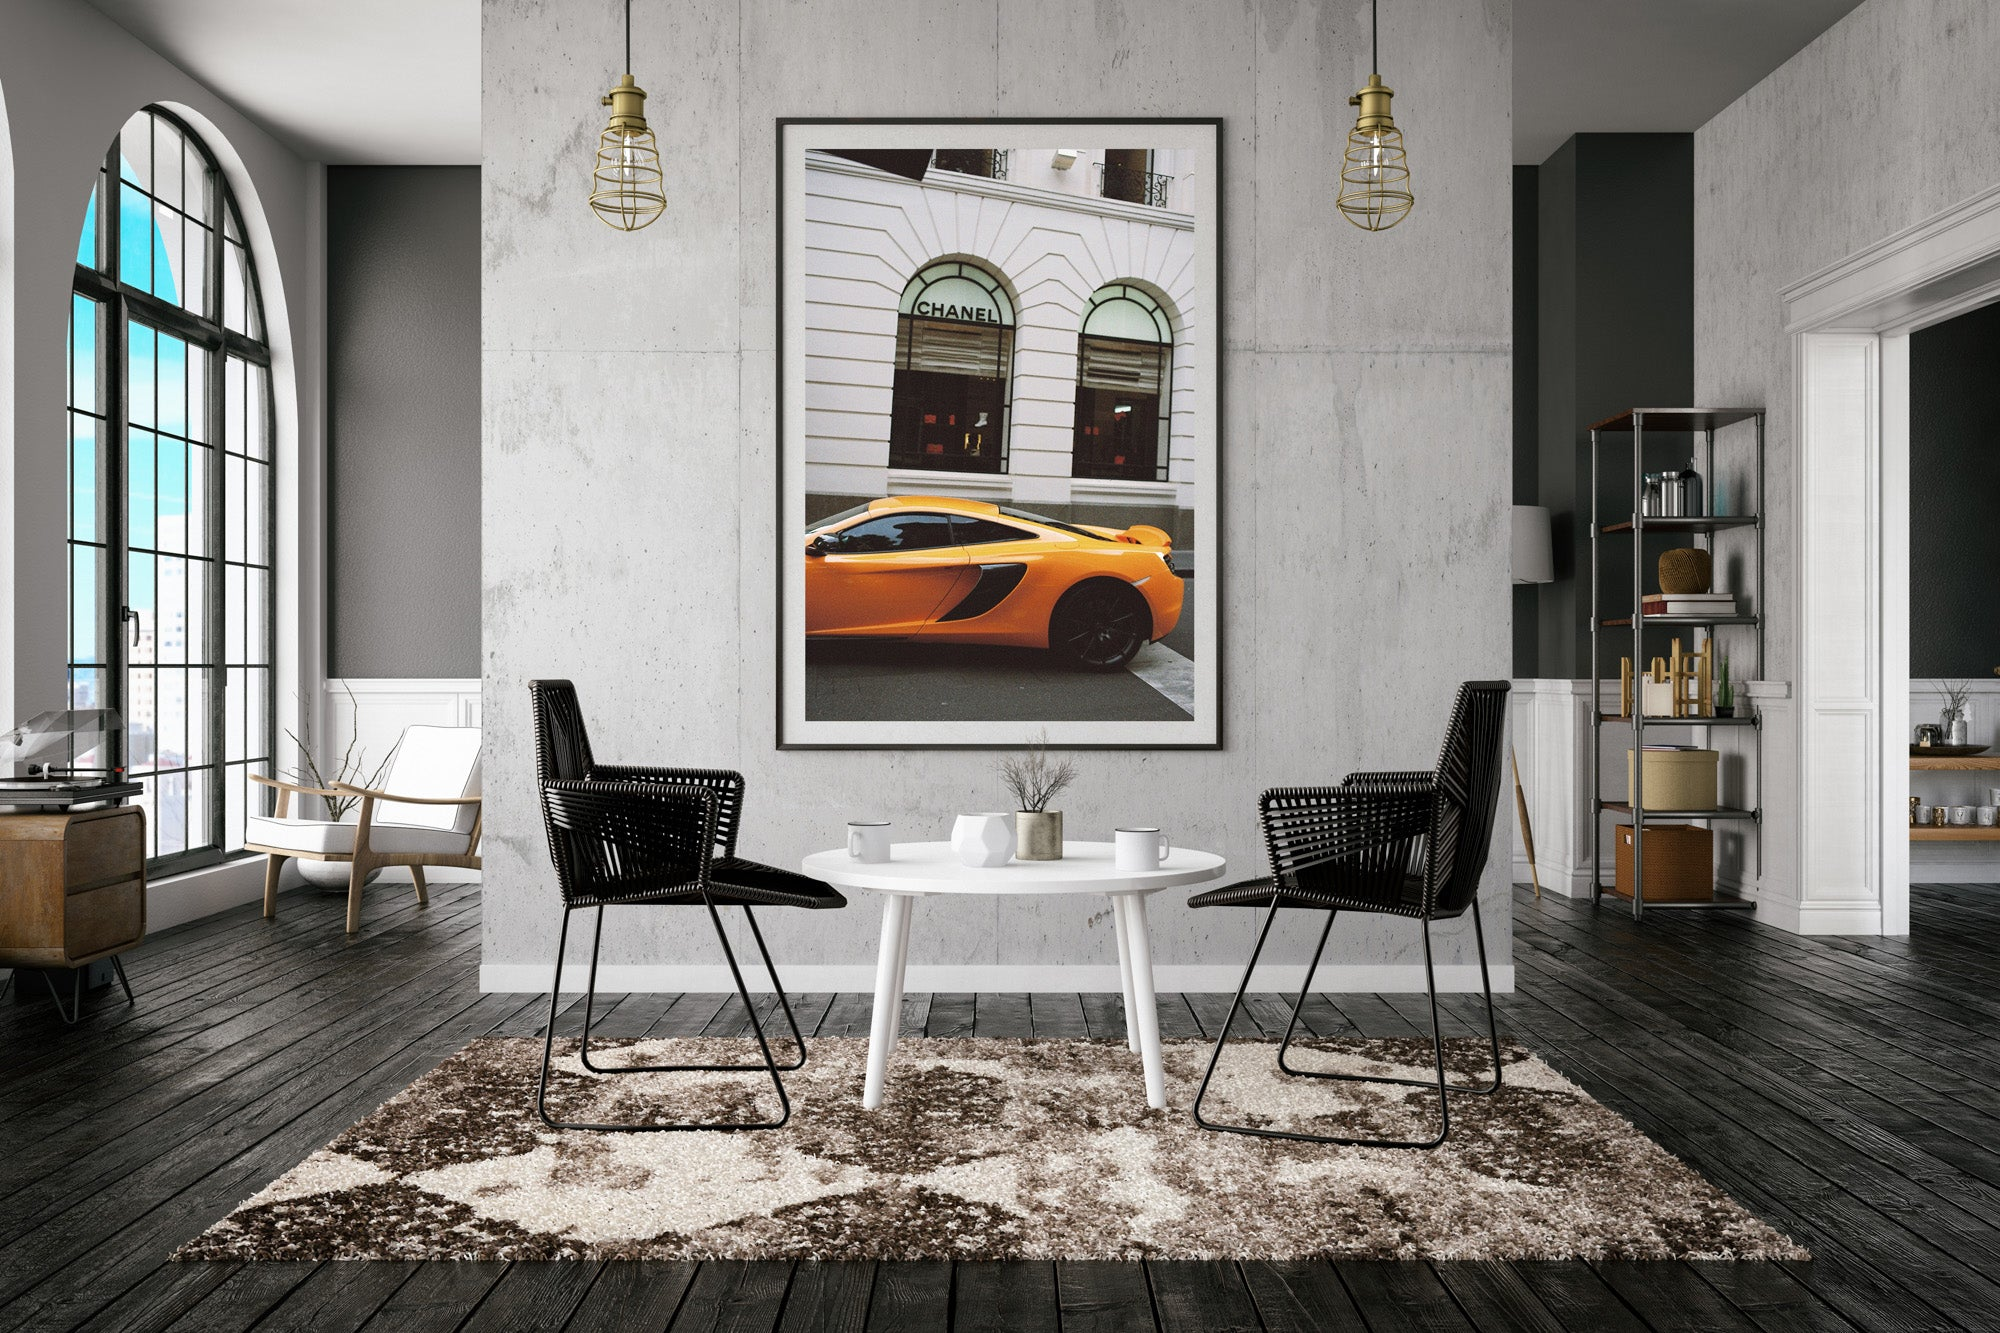 A photography of a yellow sports car outside a Chanel store in melbourne,,Artwork, Prints wall art  Photographic prints Framed artwork, Photography, urban arty, Chanel, sports car, lambourgini, Film photography, Vintage photo style,  Interior design, , Buy Art, photography art, buy art, Prints for sale, art prints, colour photography ,Chanel,